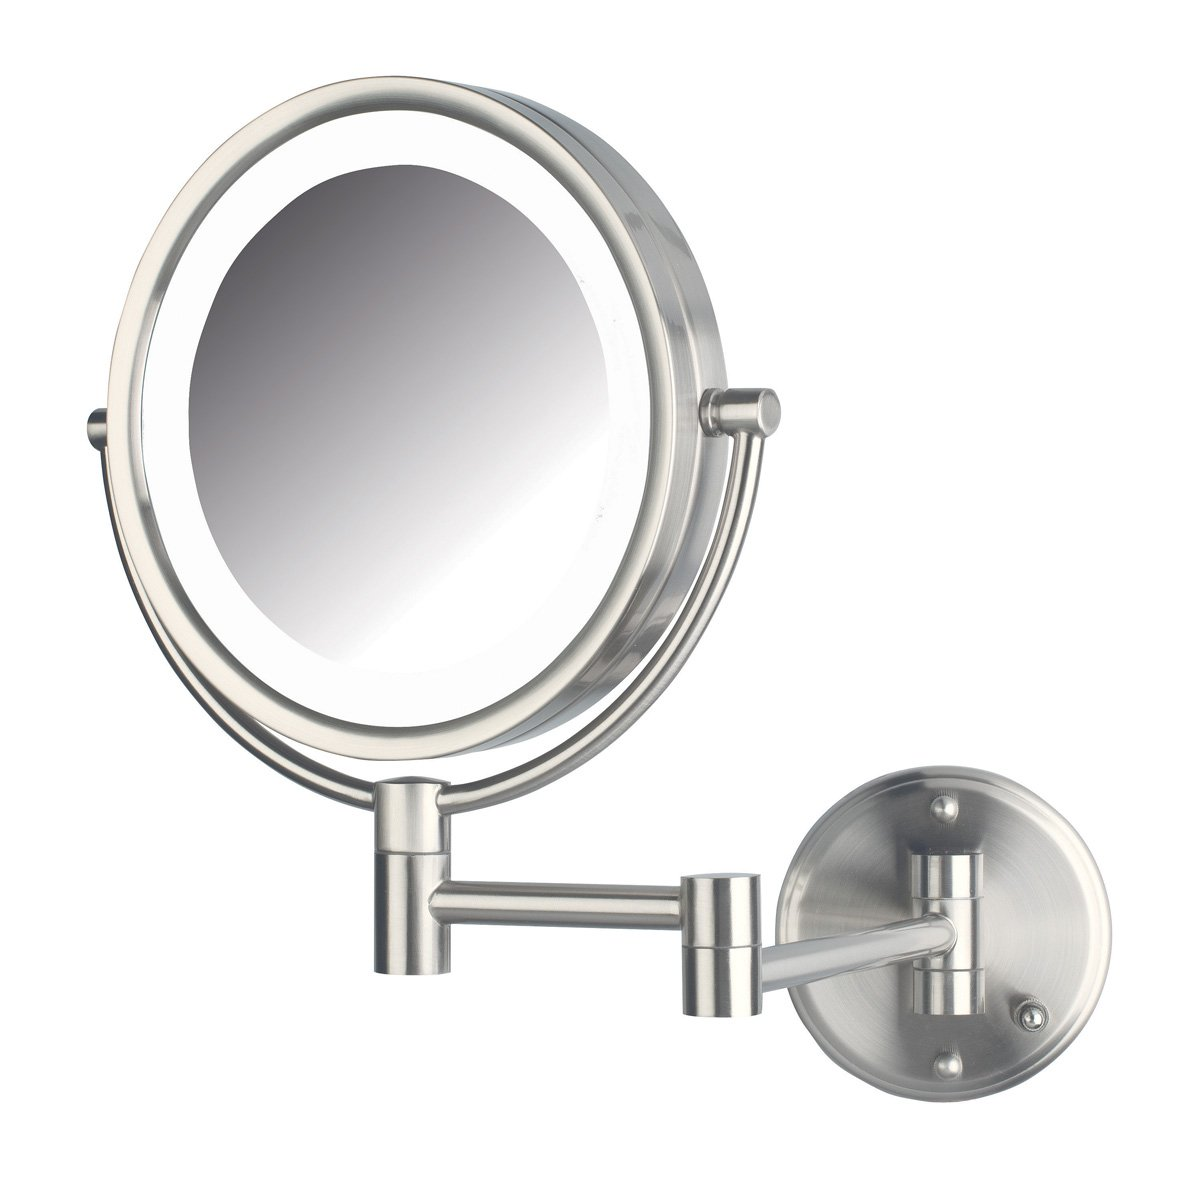 Jerdon HL88NLD 8.5-Inch LED Lighted Direct Wire Direct Wire Makeup Mirror with 8x Magnification, Nickel Finish by Jerdon (Image #1)